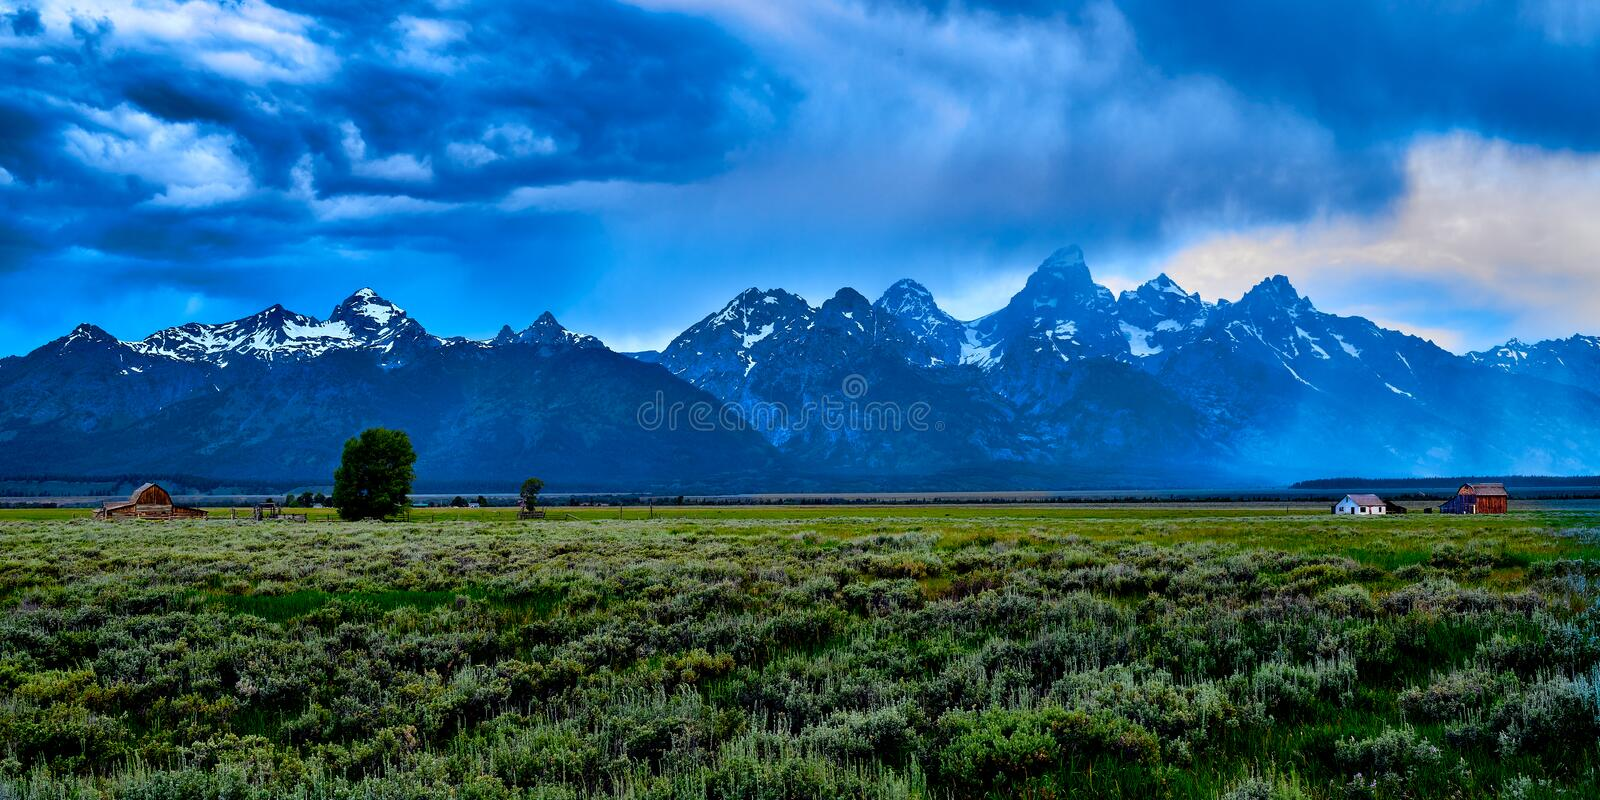 Ankunft des Sturms in Mormon Row im Grand Teton Nationalpark, Wyoming stockfotos